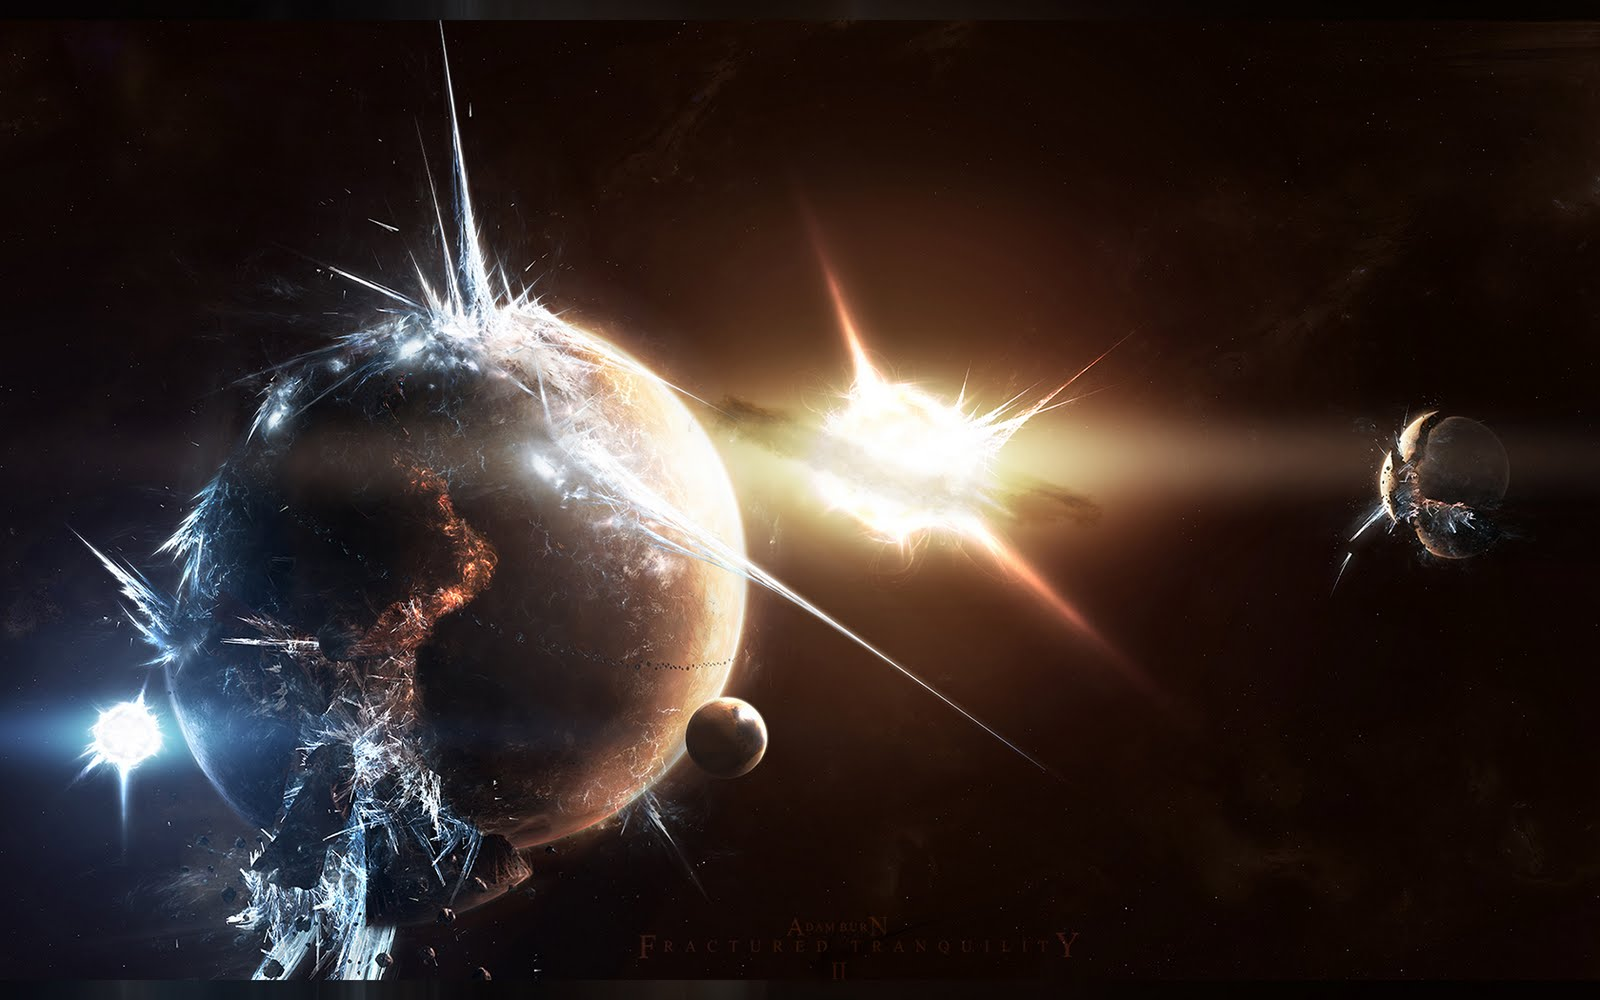 Space HD Wallpapers 1080p 1600x1000